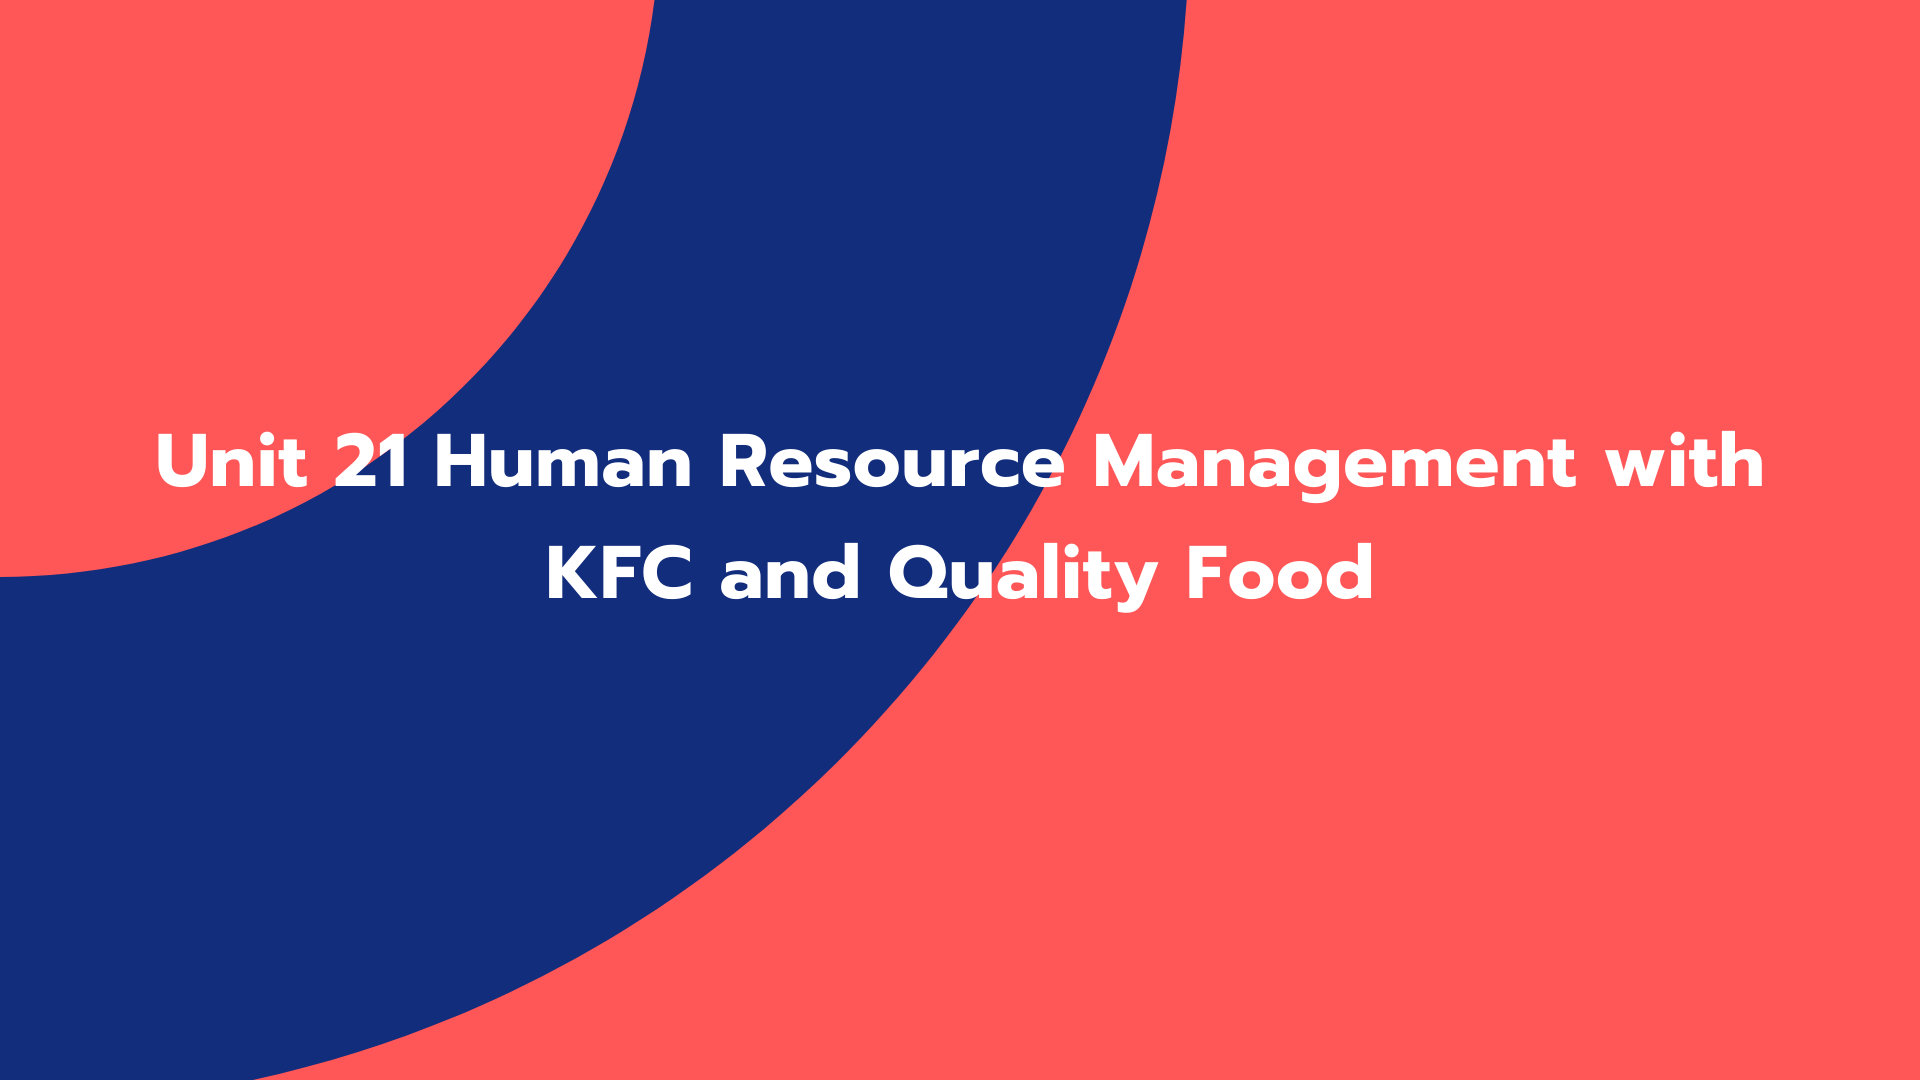 Unit 21 Human Resource Management with KFC and Quality Food